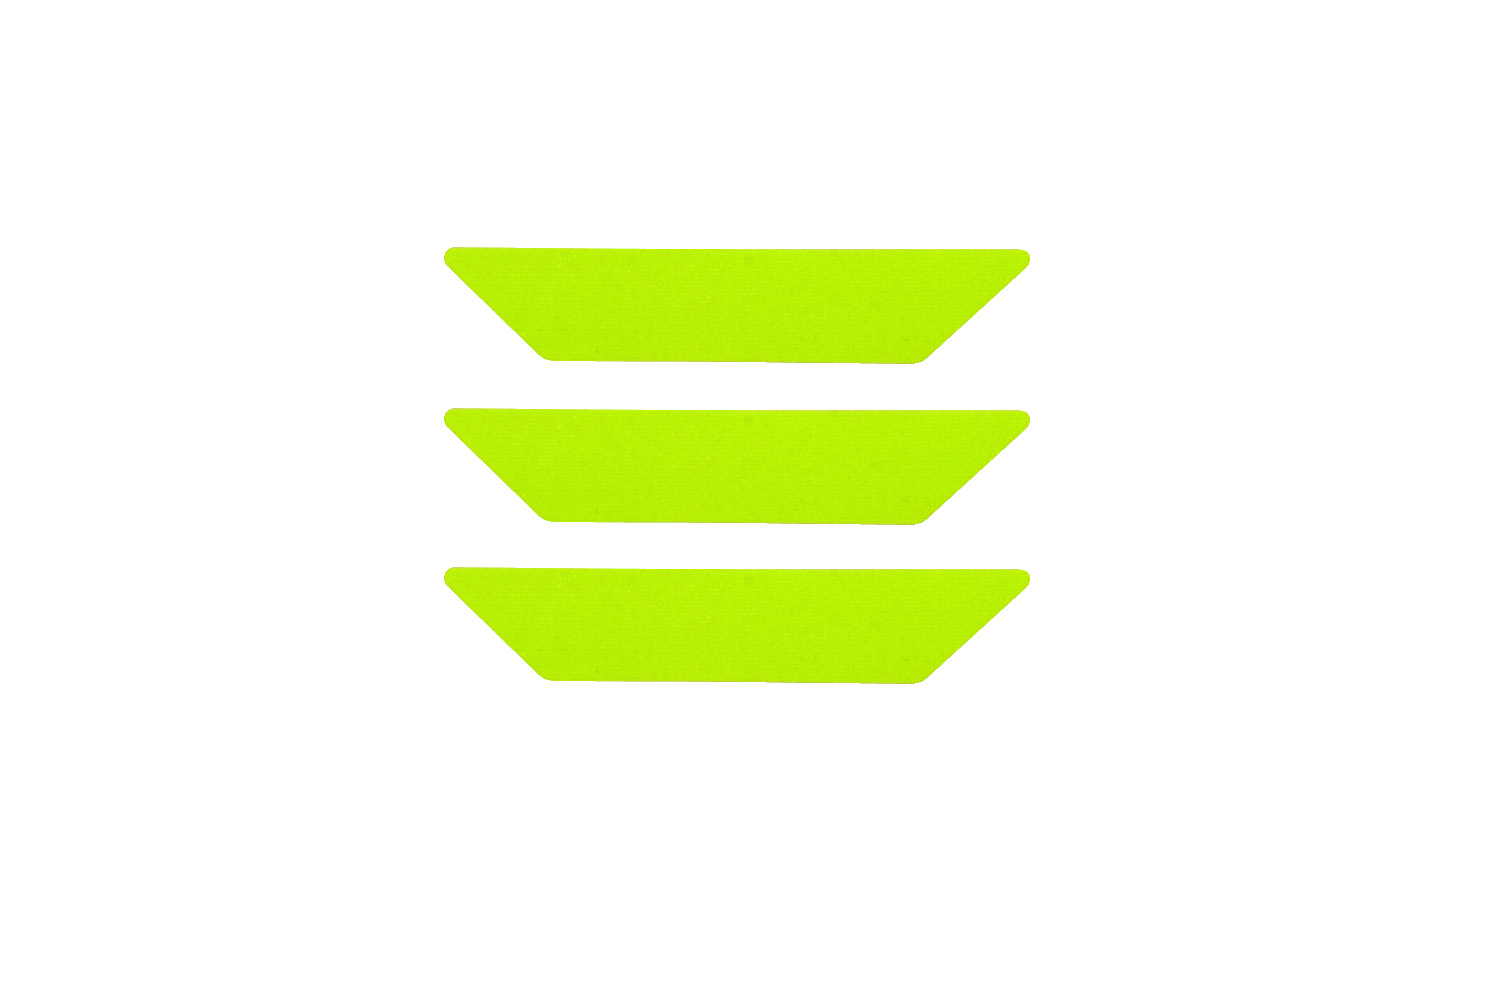 "Bullard RETRO-REFLECTIVE STRIPES, LIME-YELLOW SCOTCHLITE, ADHESIVE BACKED, 1"" X 4"", SET OF 3"